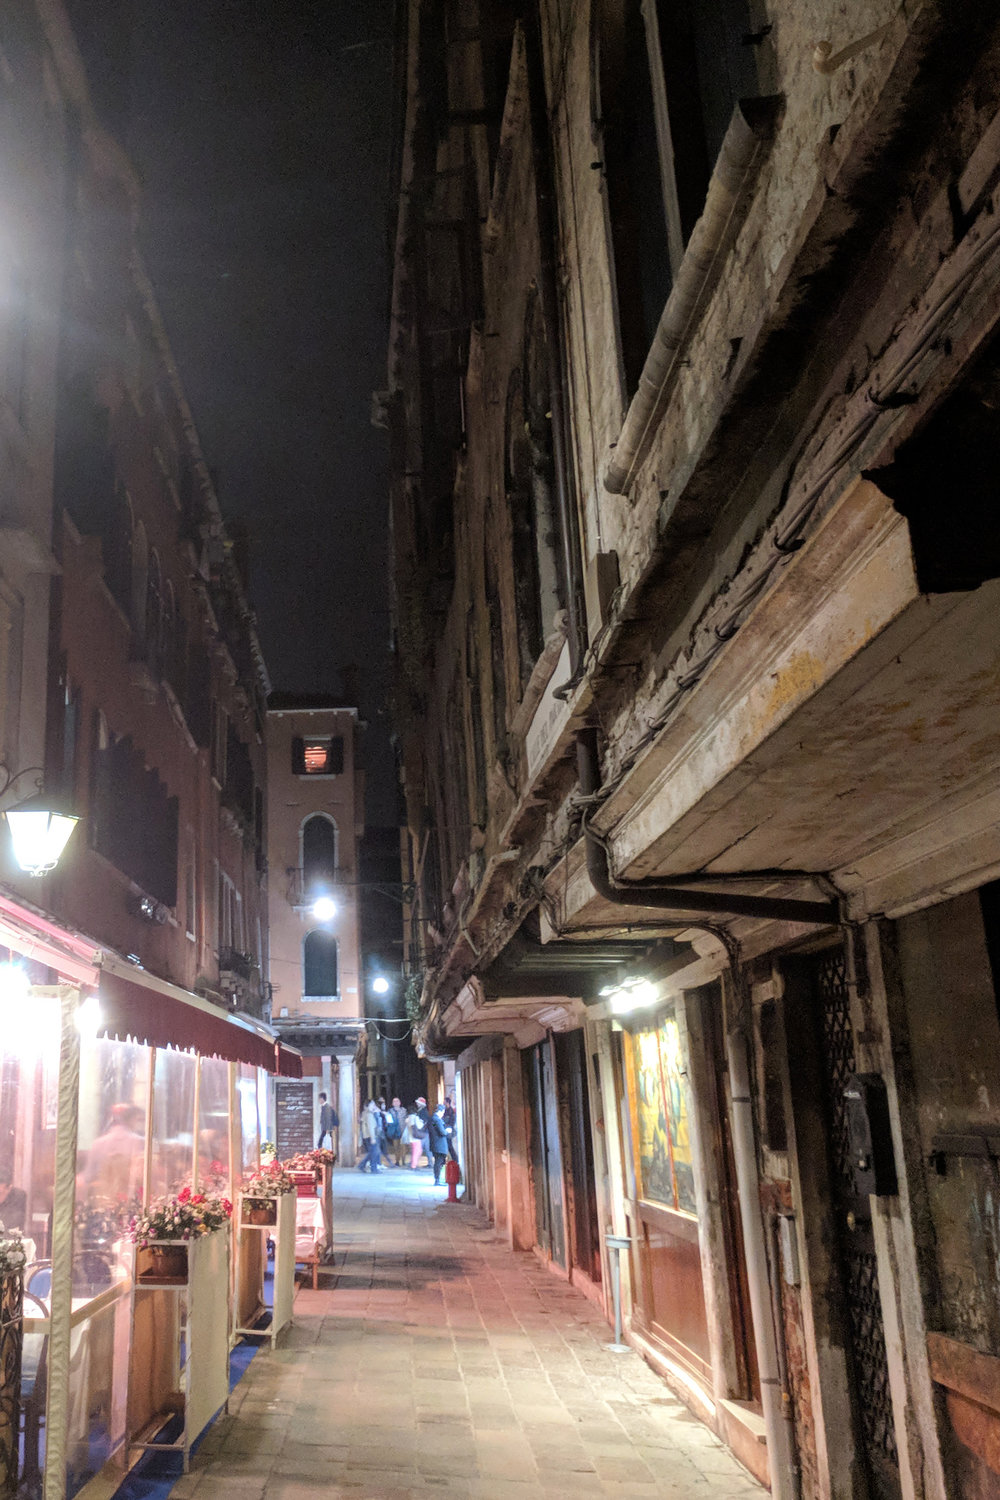 Venice Italy street cafe at night. JHD Travels Venice travel blog. American expat designer in Berlin.